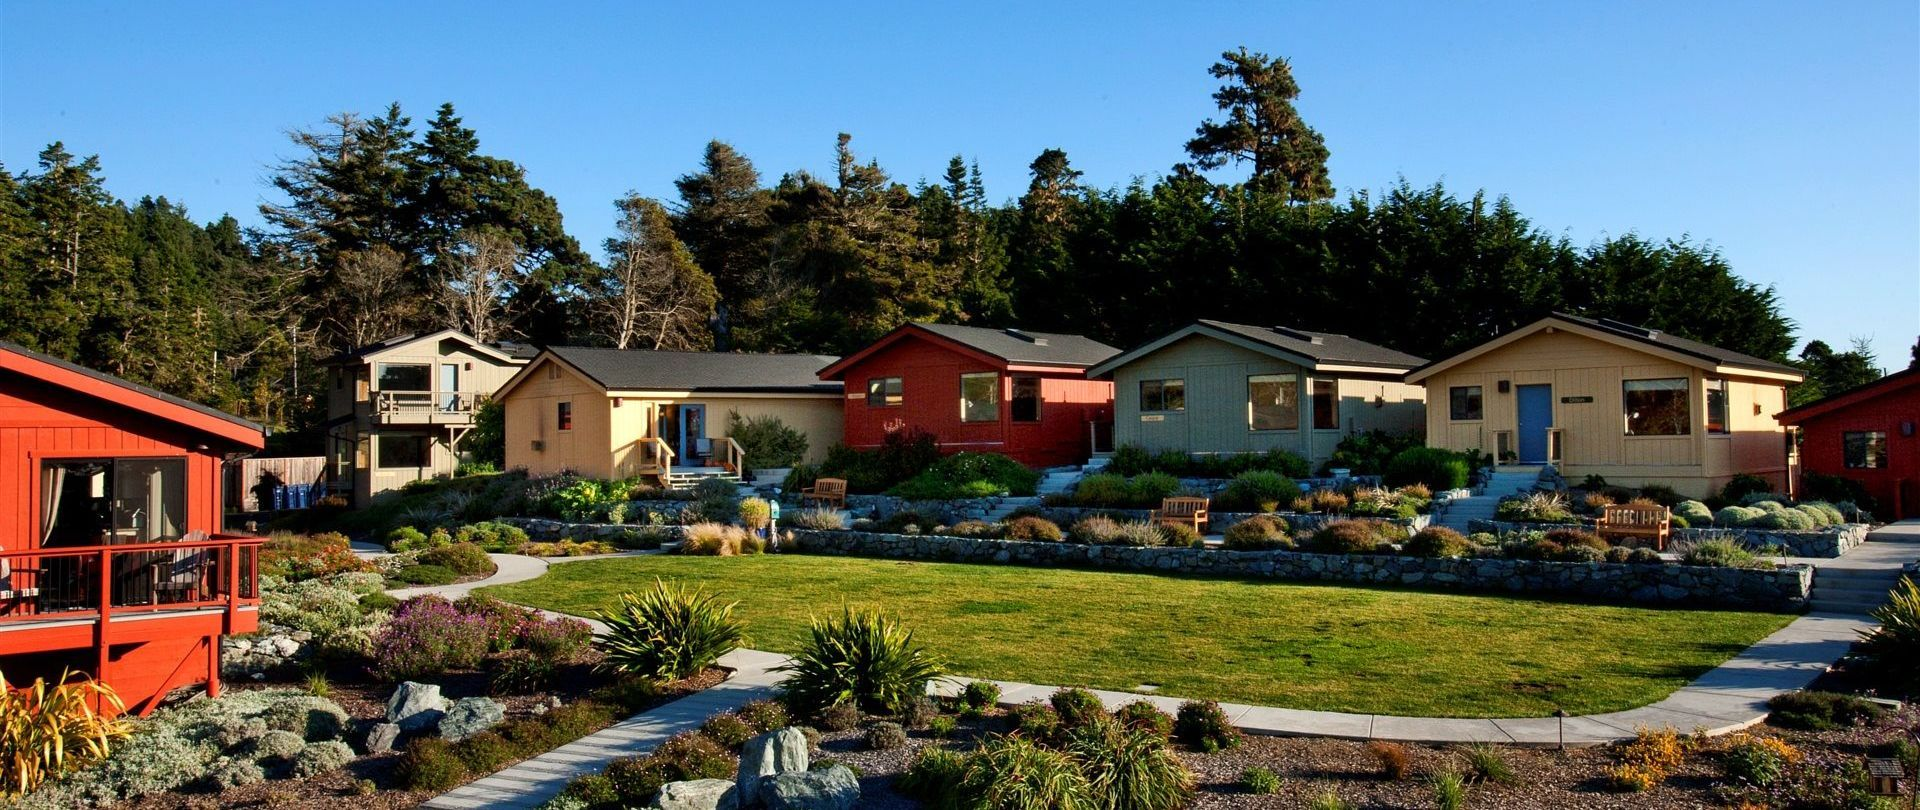 The Sea Rock Inn a Mendocino Bed and Breakfast offers romantic